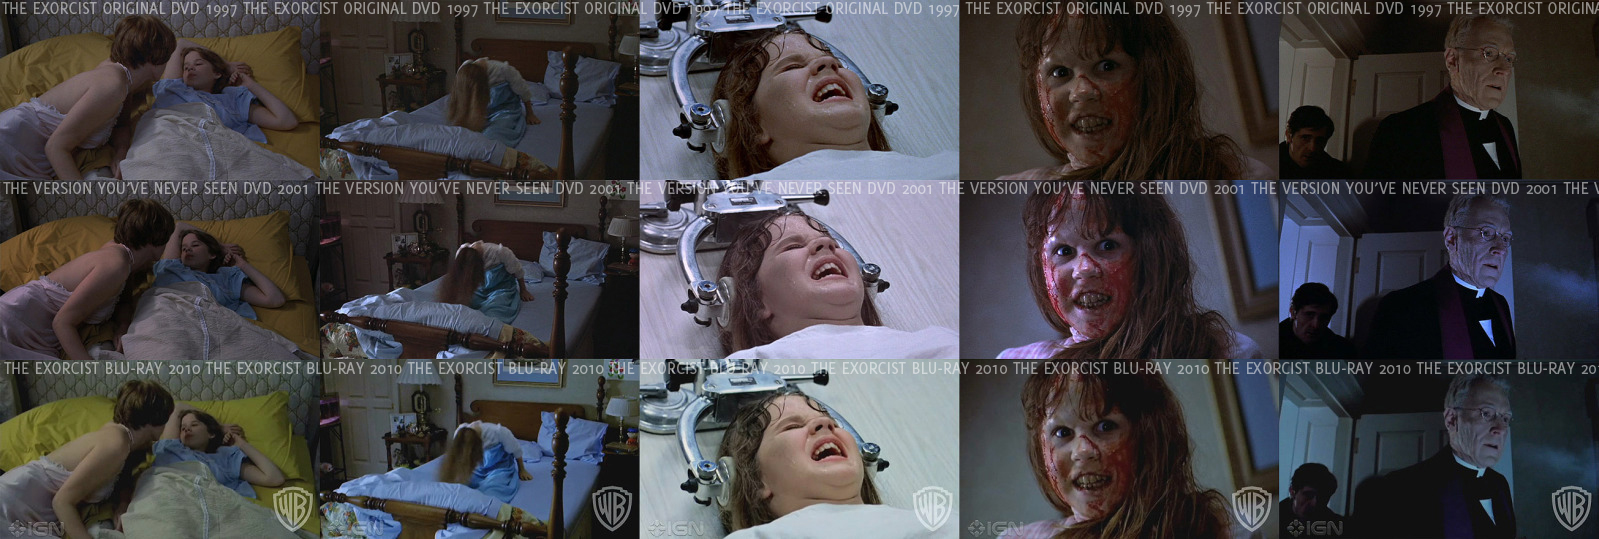 The Exorcist image quality comparisons between DVD and Blu